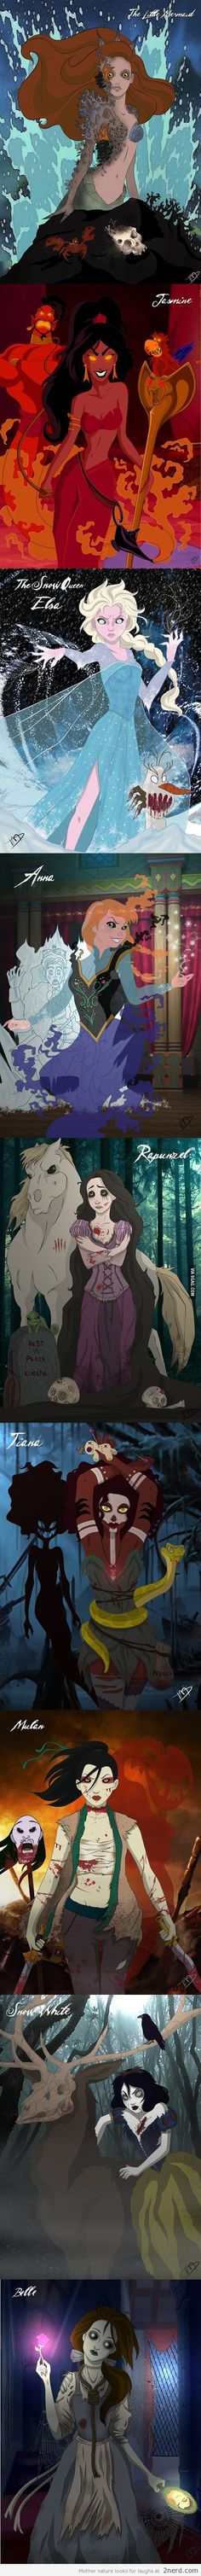 Disney Princesses switched up a bit - http://2nerd.com/funny-pics/disney-princesses-switched-bit/